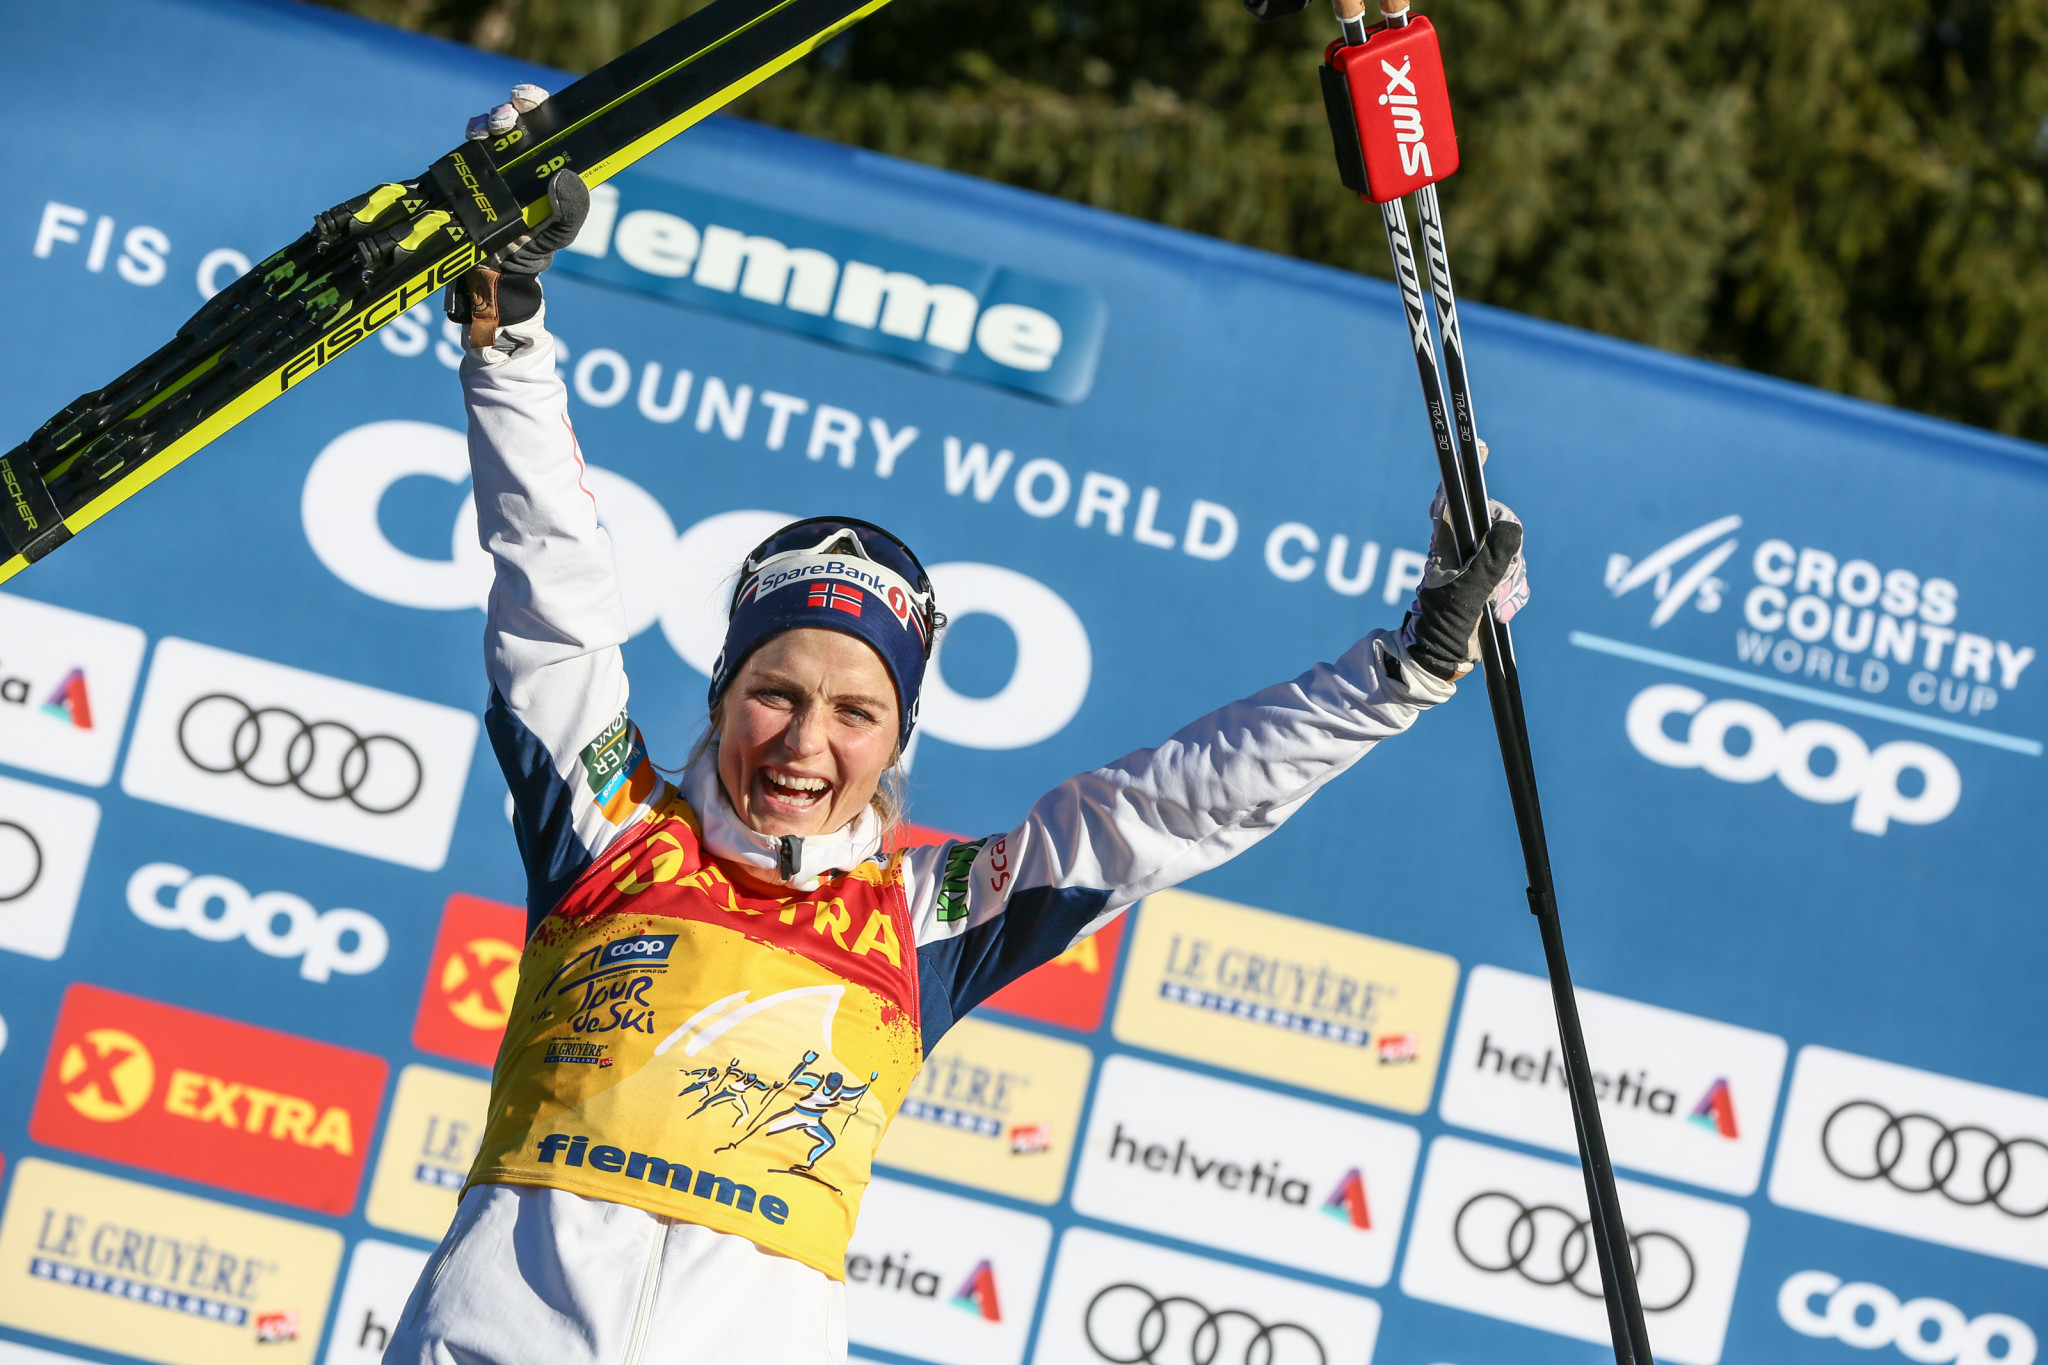 Johaug in control as FIS Cross-Country World Cup lands in Nové Město